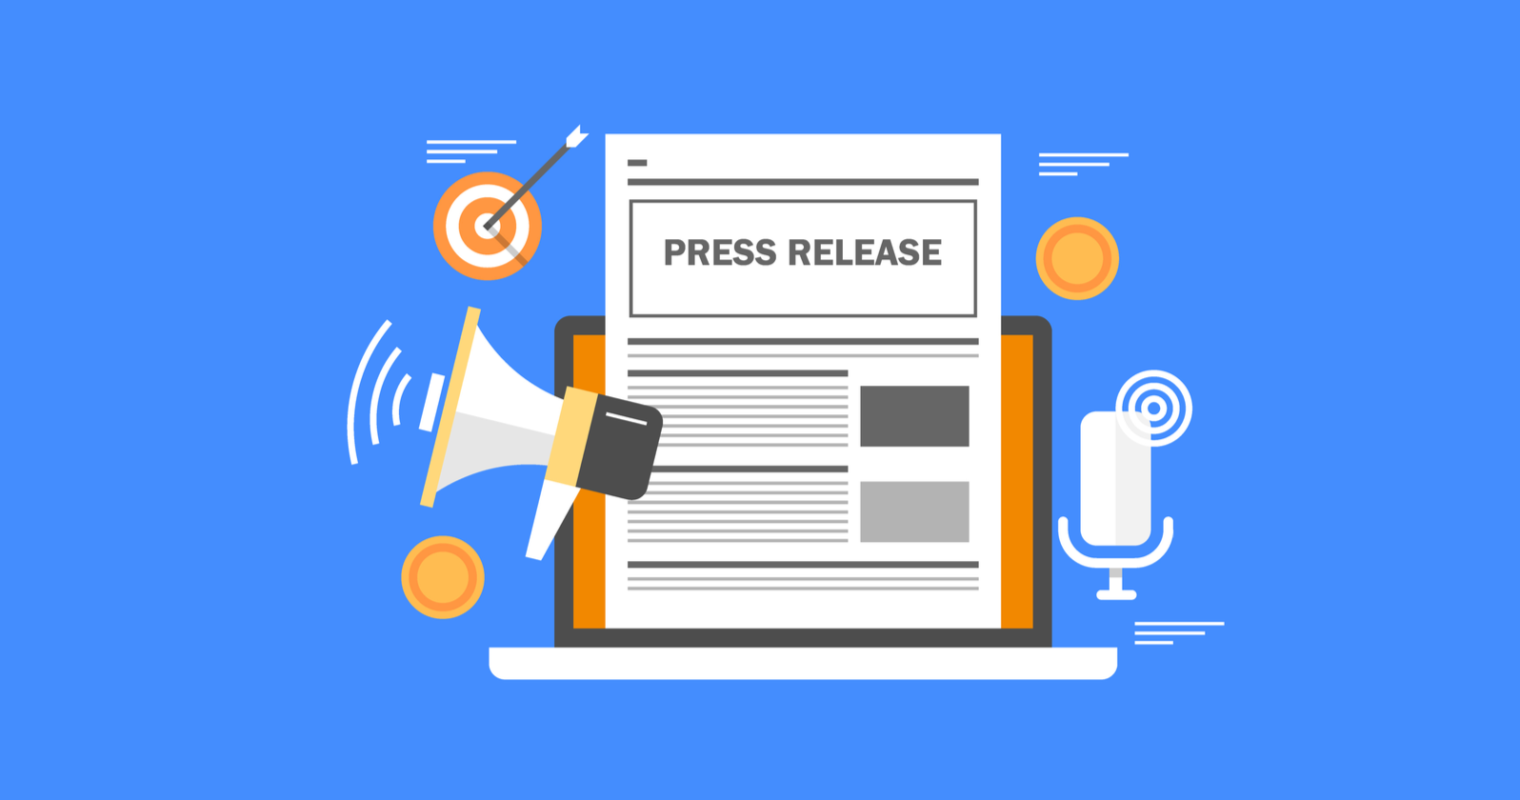 Are Press Releases Still Good for SEO?